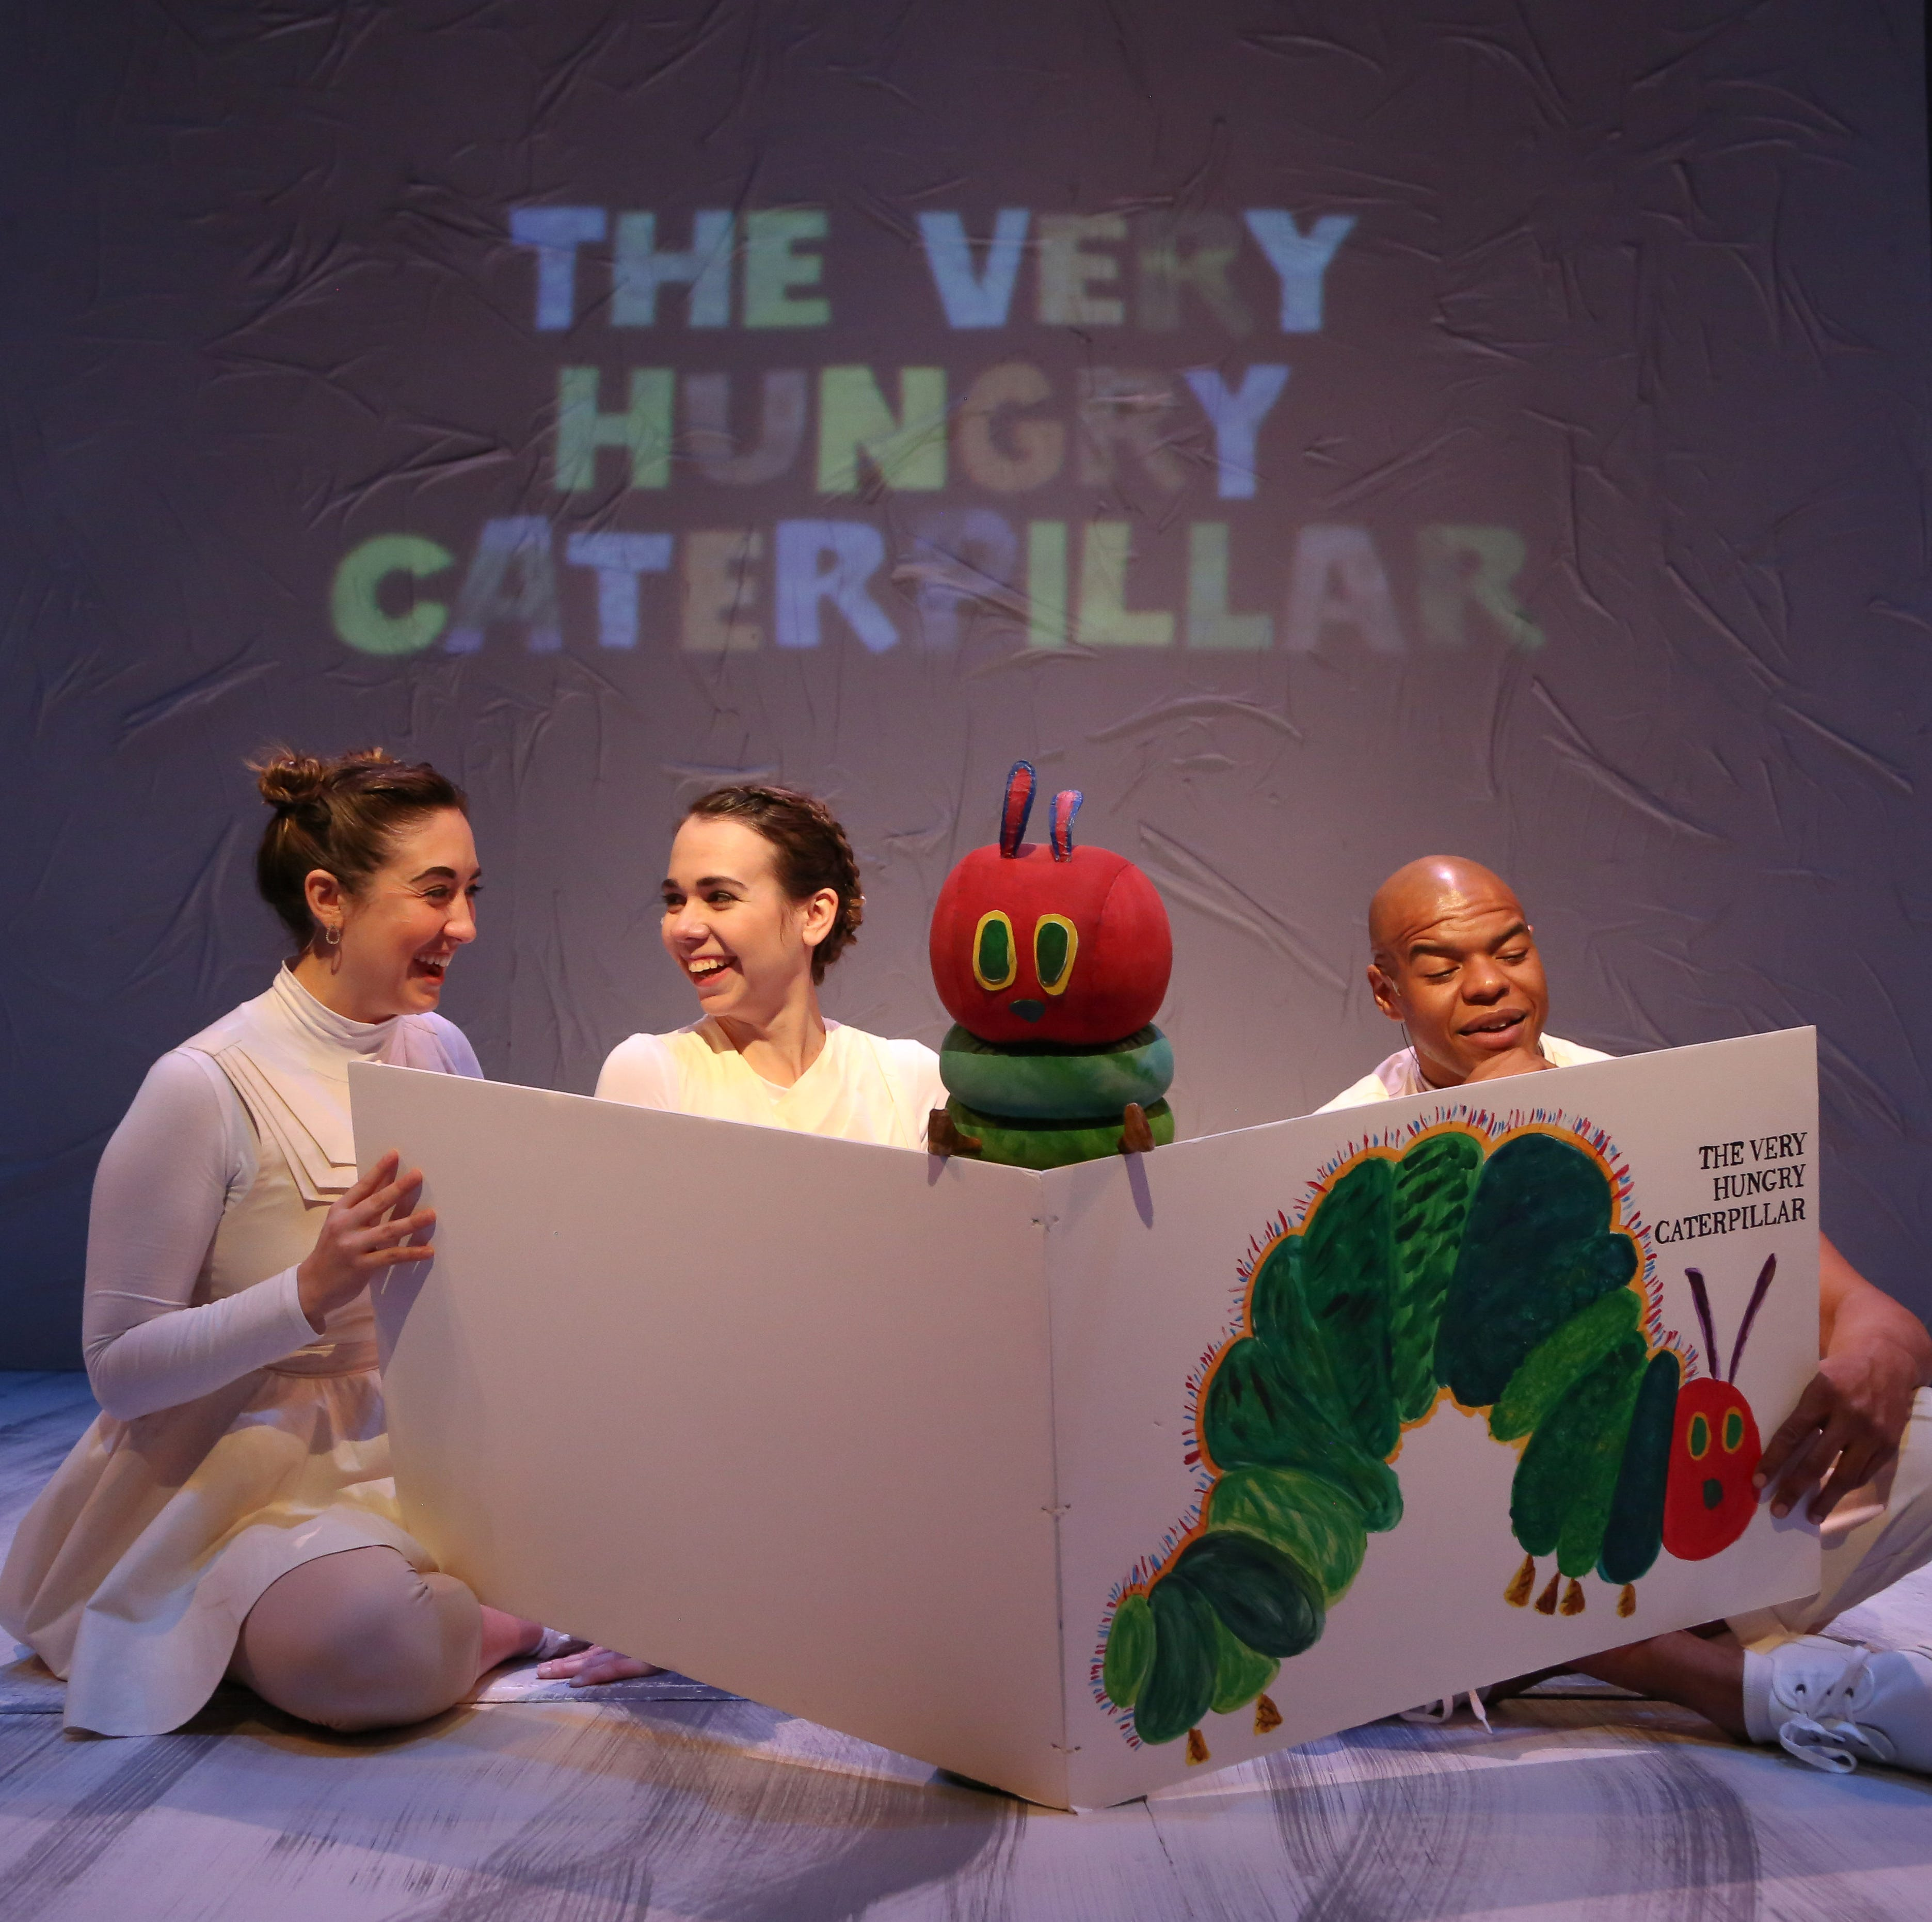 Relive magical childhood moments with 'The Very Hungry Caterpillar Show' at NCT